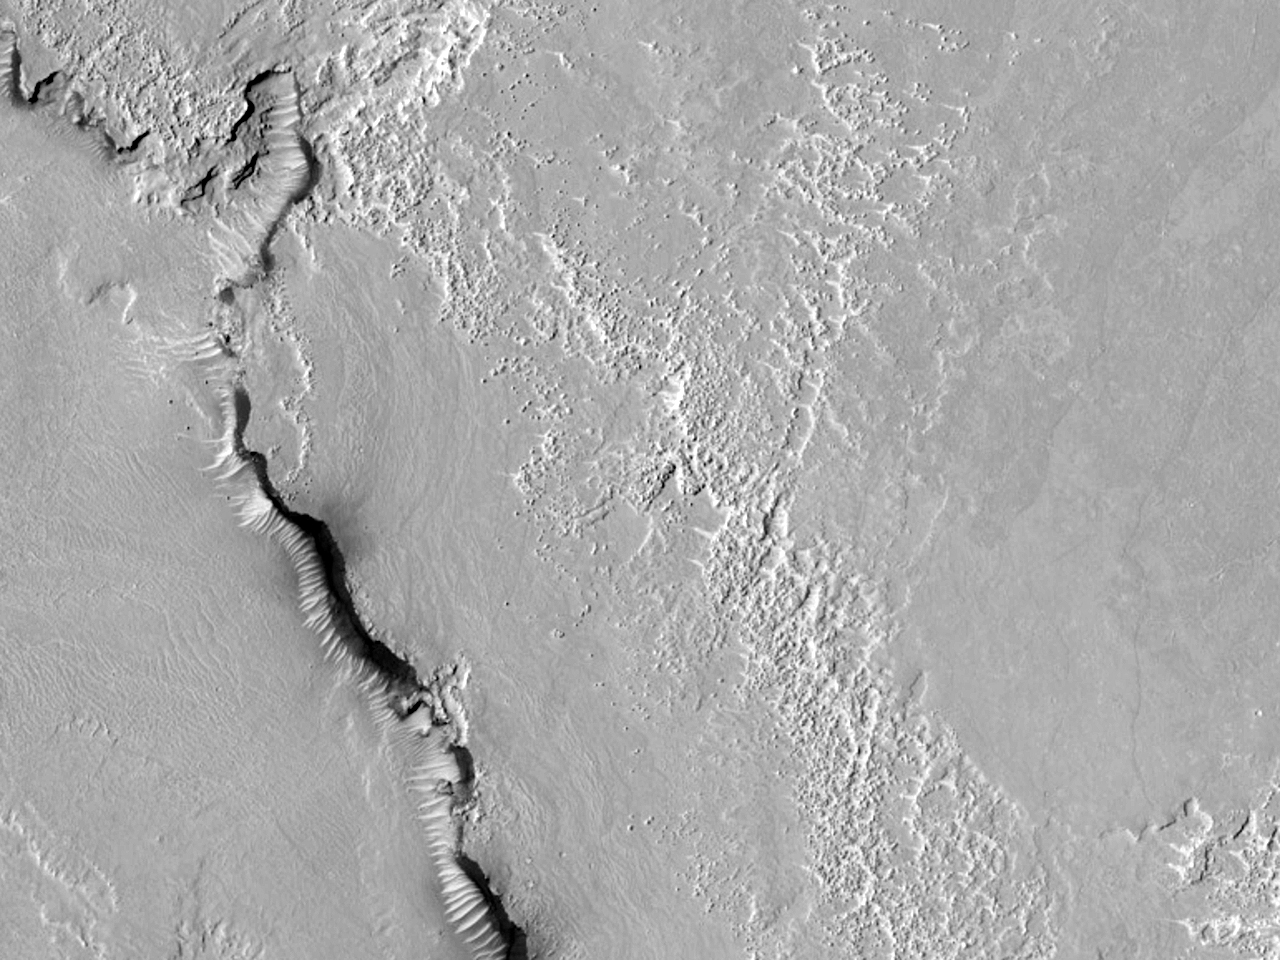 Curving Features at the Source of Athabasca Valles